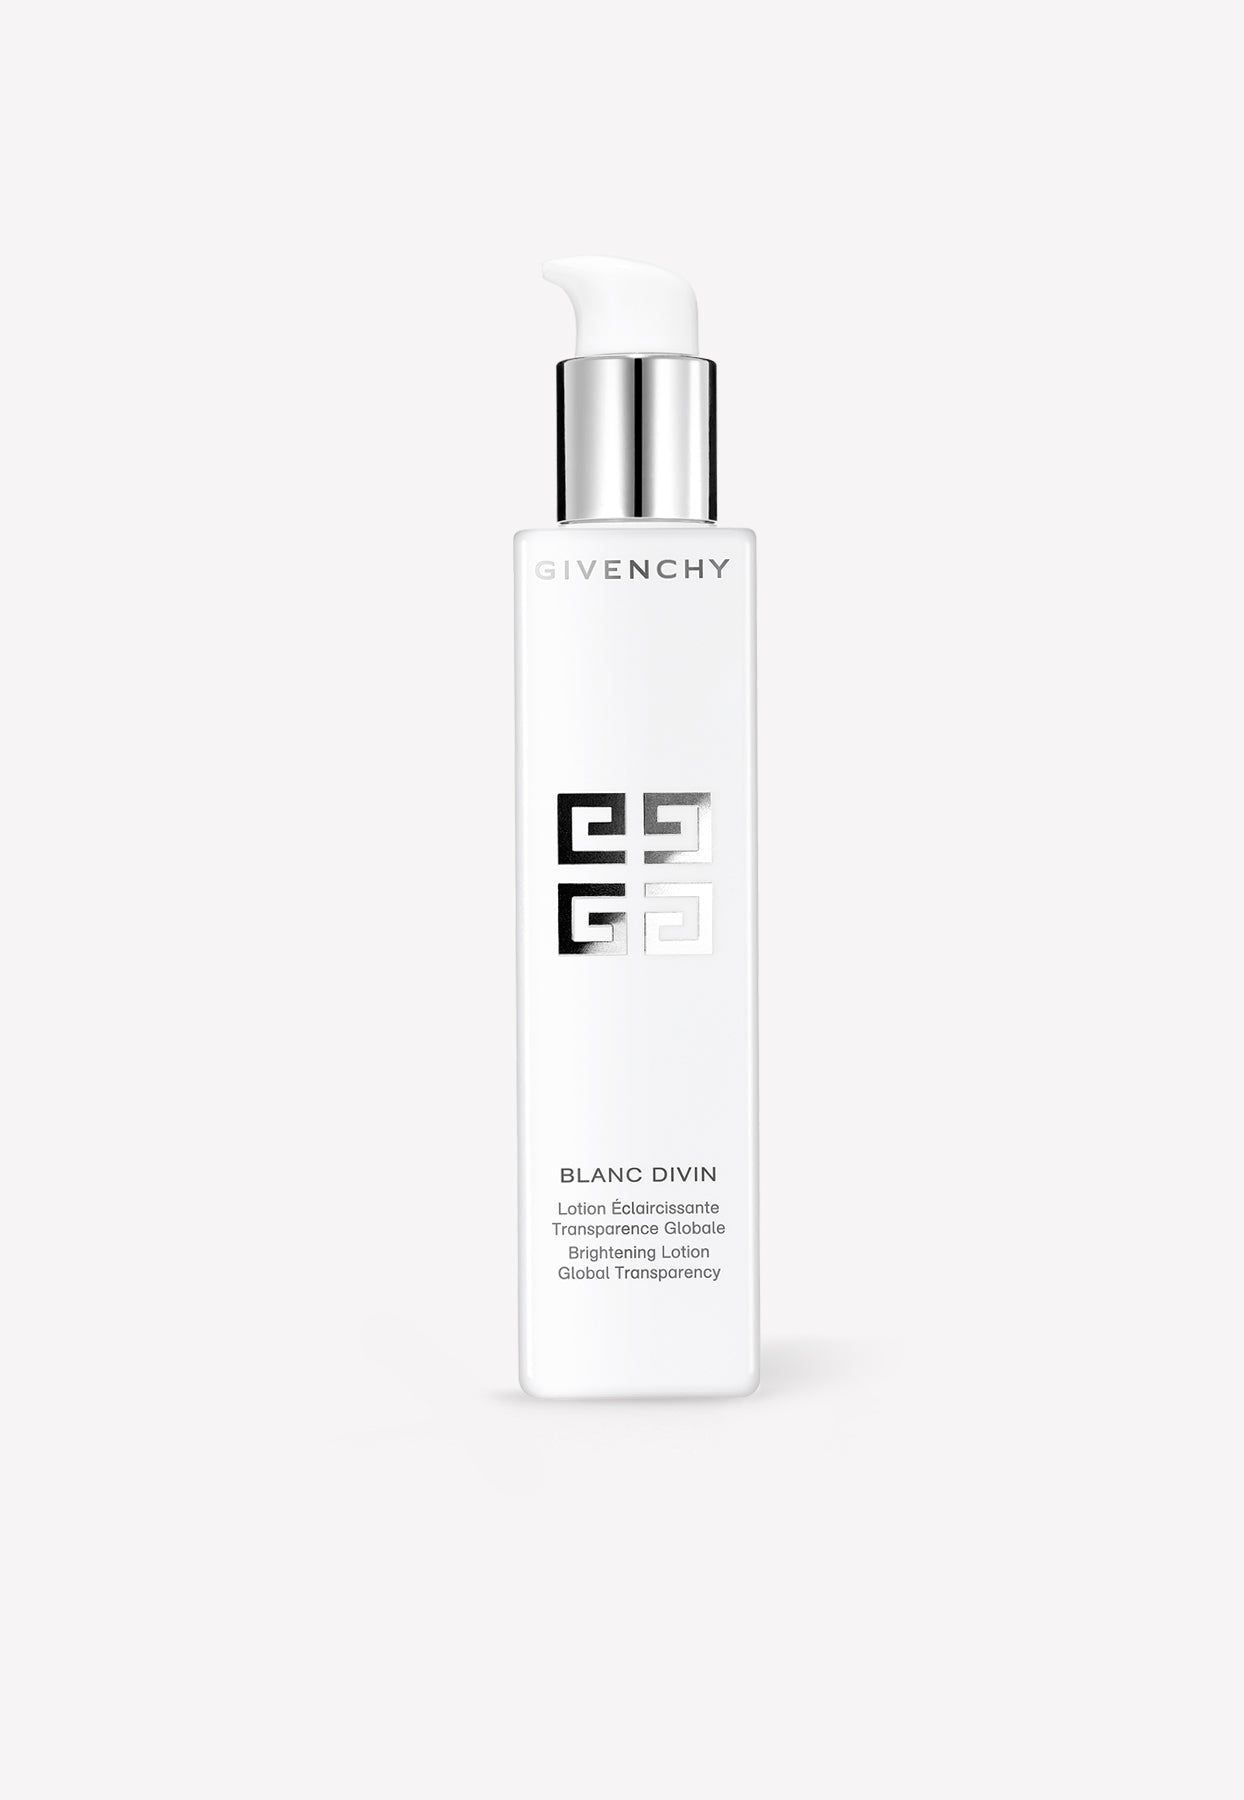 Givenchy Blanc Divin Brightening Lotion Global Transparency In White